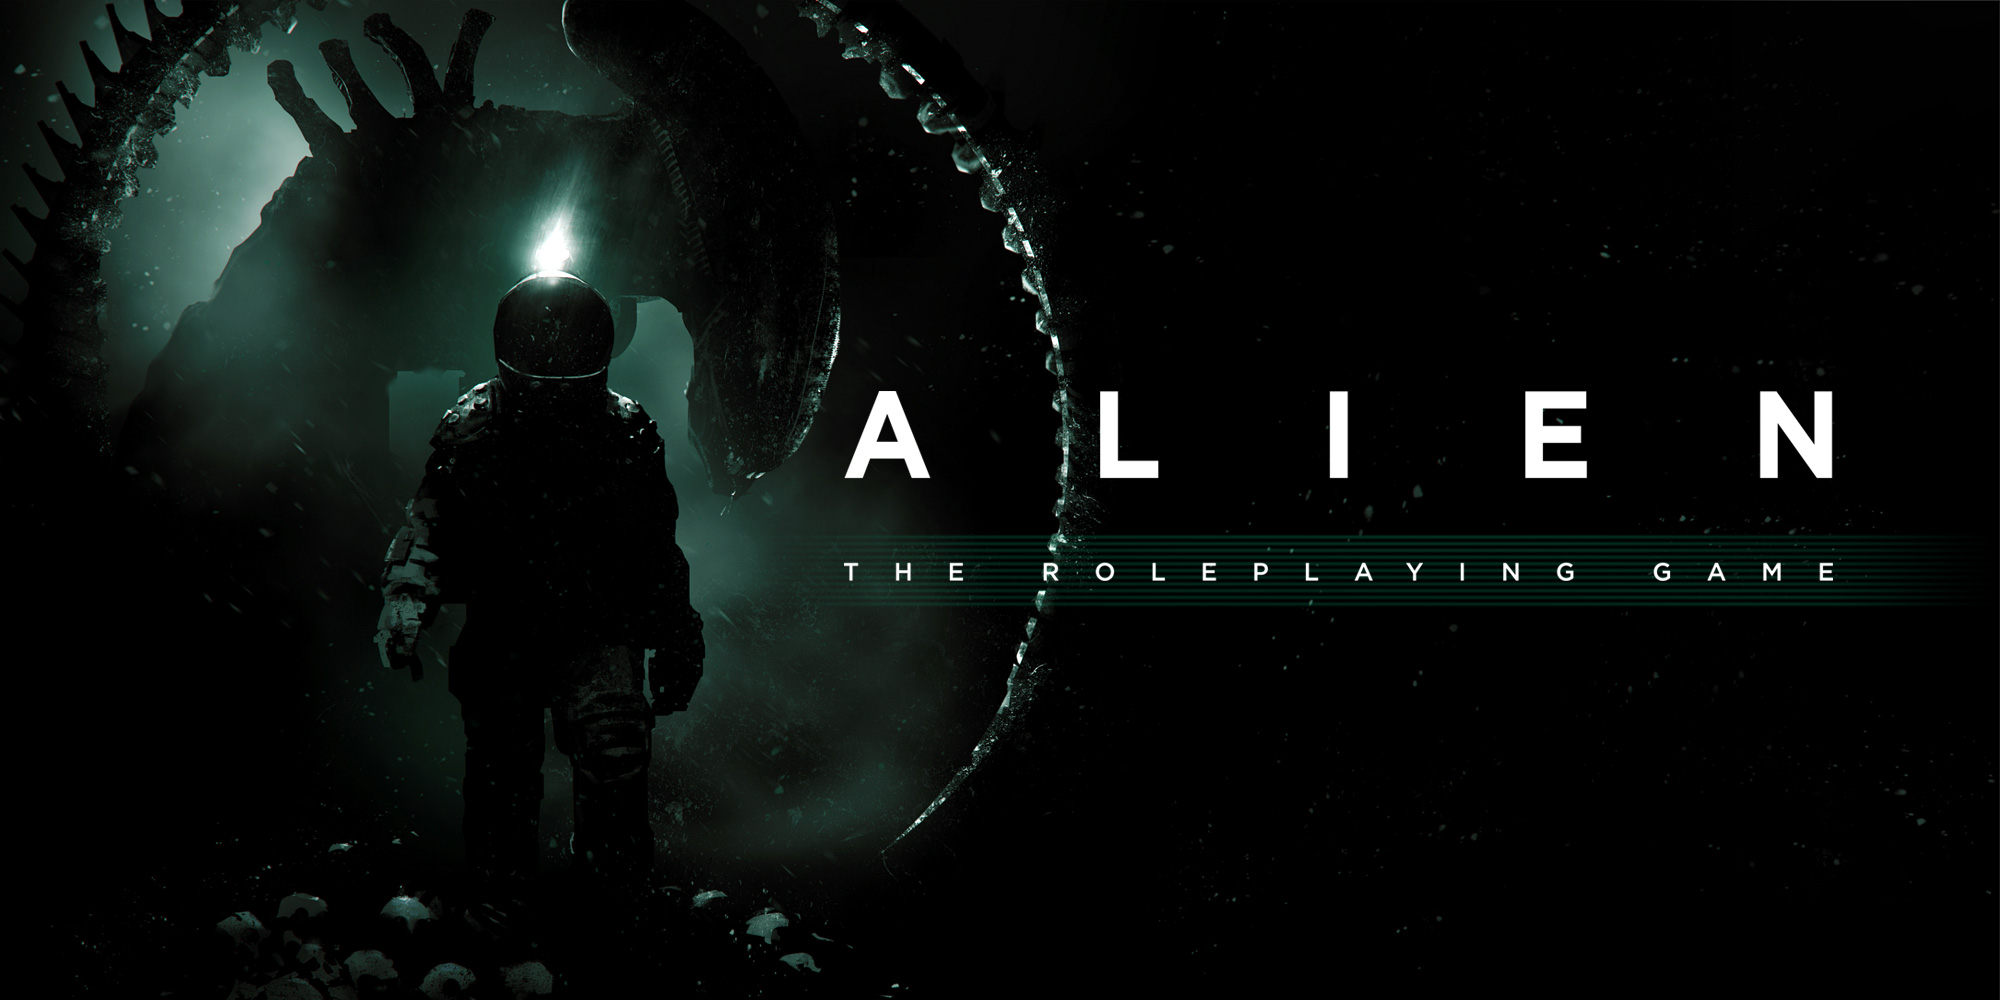 https://frialigan.se/wp-content/uploads/2019/04/alien_banner_2000x1000-1.jpg